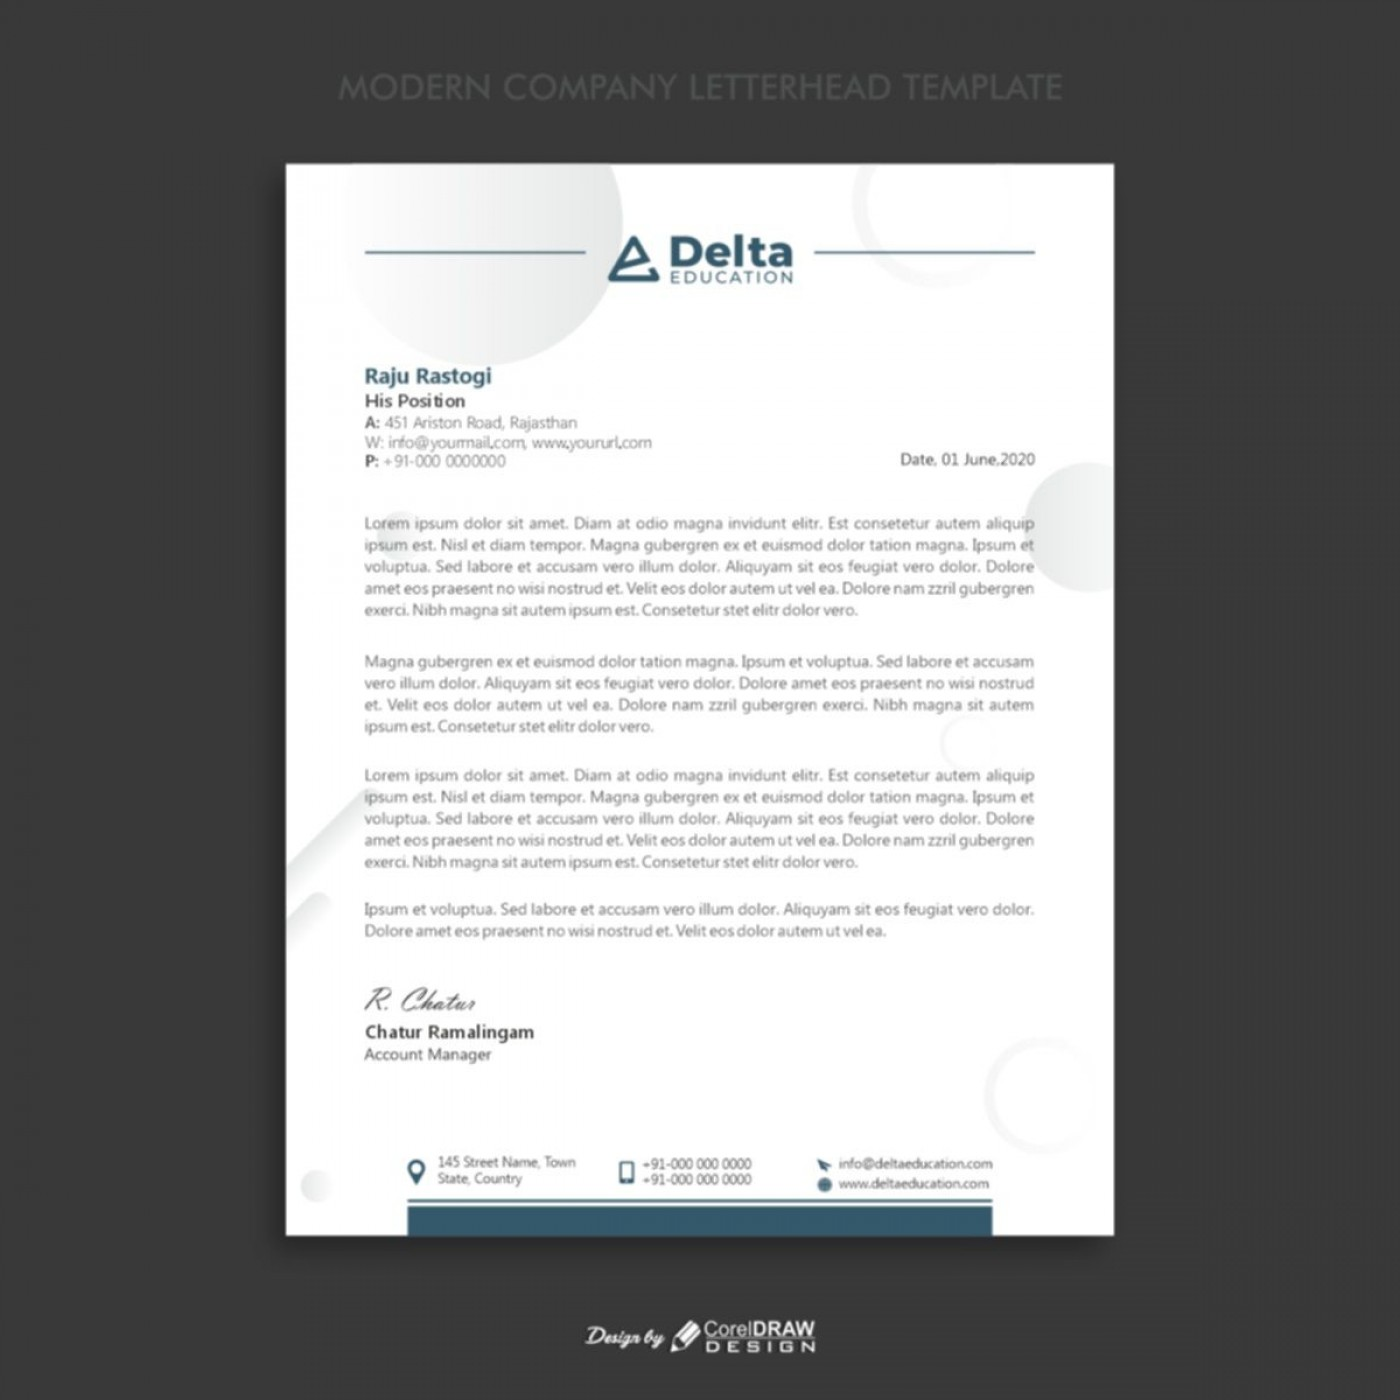 005 Fascinating Letterhead Template Free Download Cdr Concept 1400